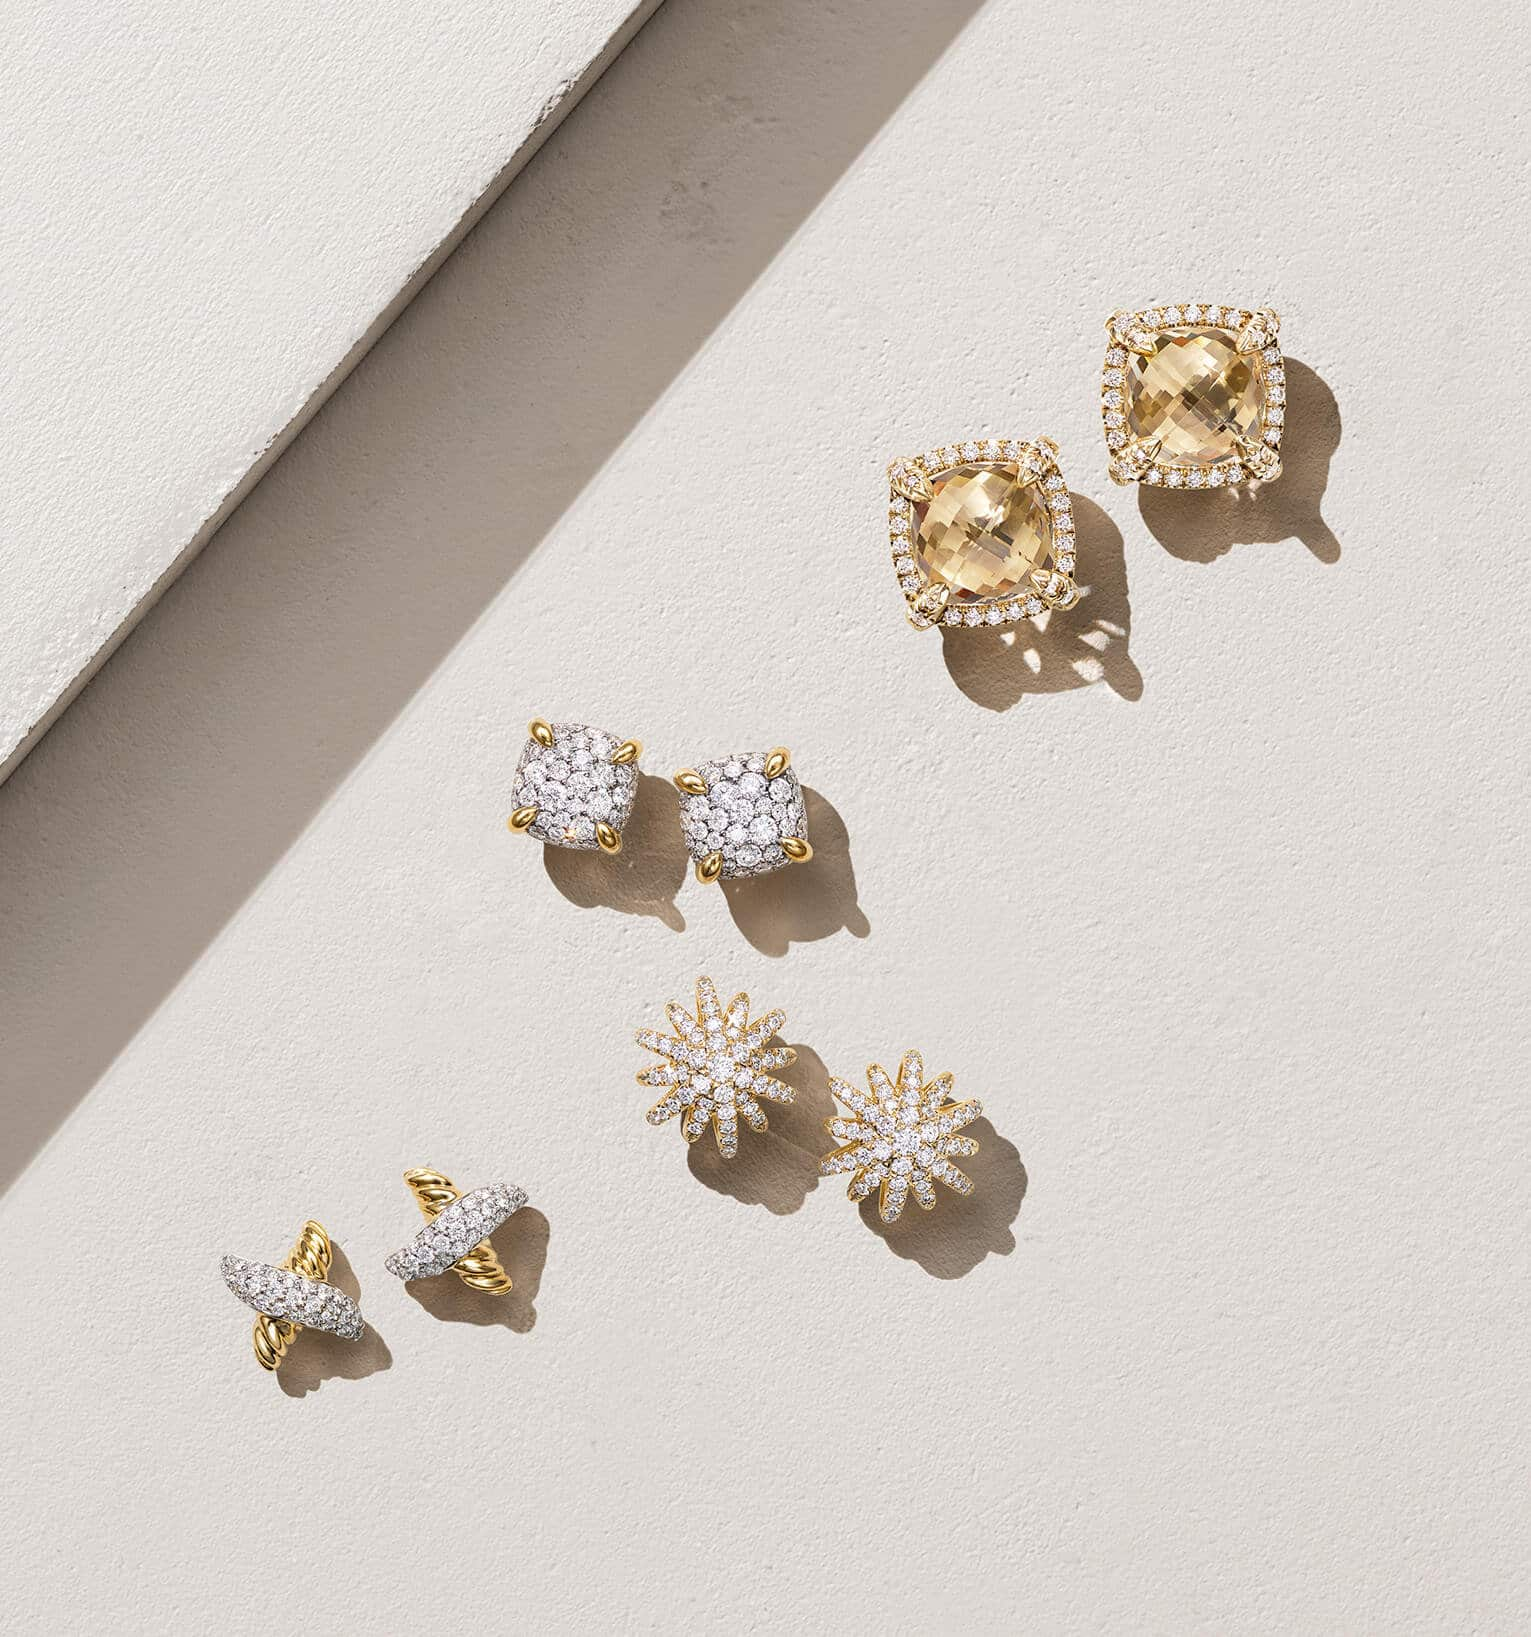 A color photograph shows an overhead shot of four pairs of David Yurman stud earrings for women from the X, Starburst and Châtelaine collections scattered atop a beige-hued stone shelf with hard diagonal shadows. The women's earrings are crafted from 18K yellow gold with pavé white diamonds and with or without Champagne citrine center stones.